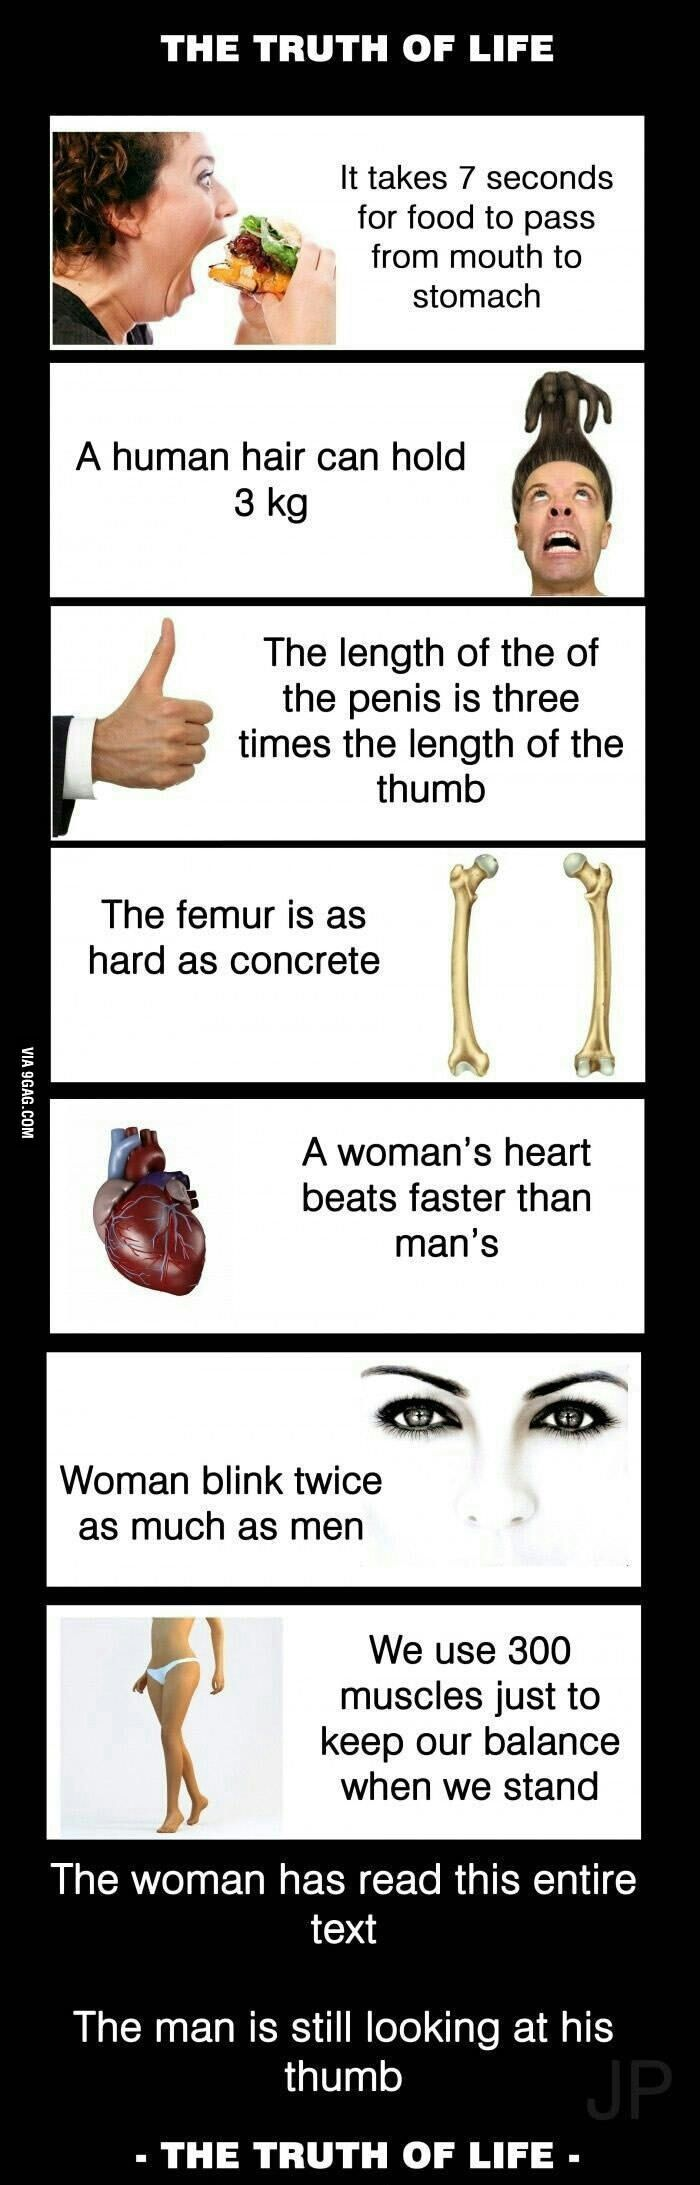 So acurate inacurate - 9GAG